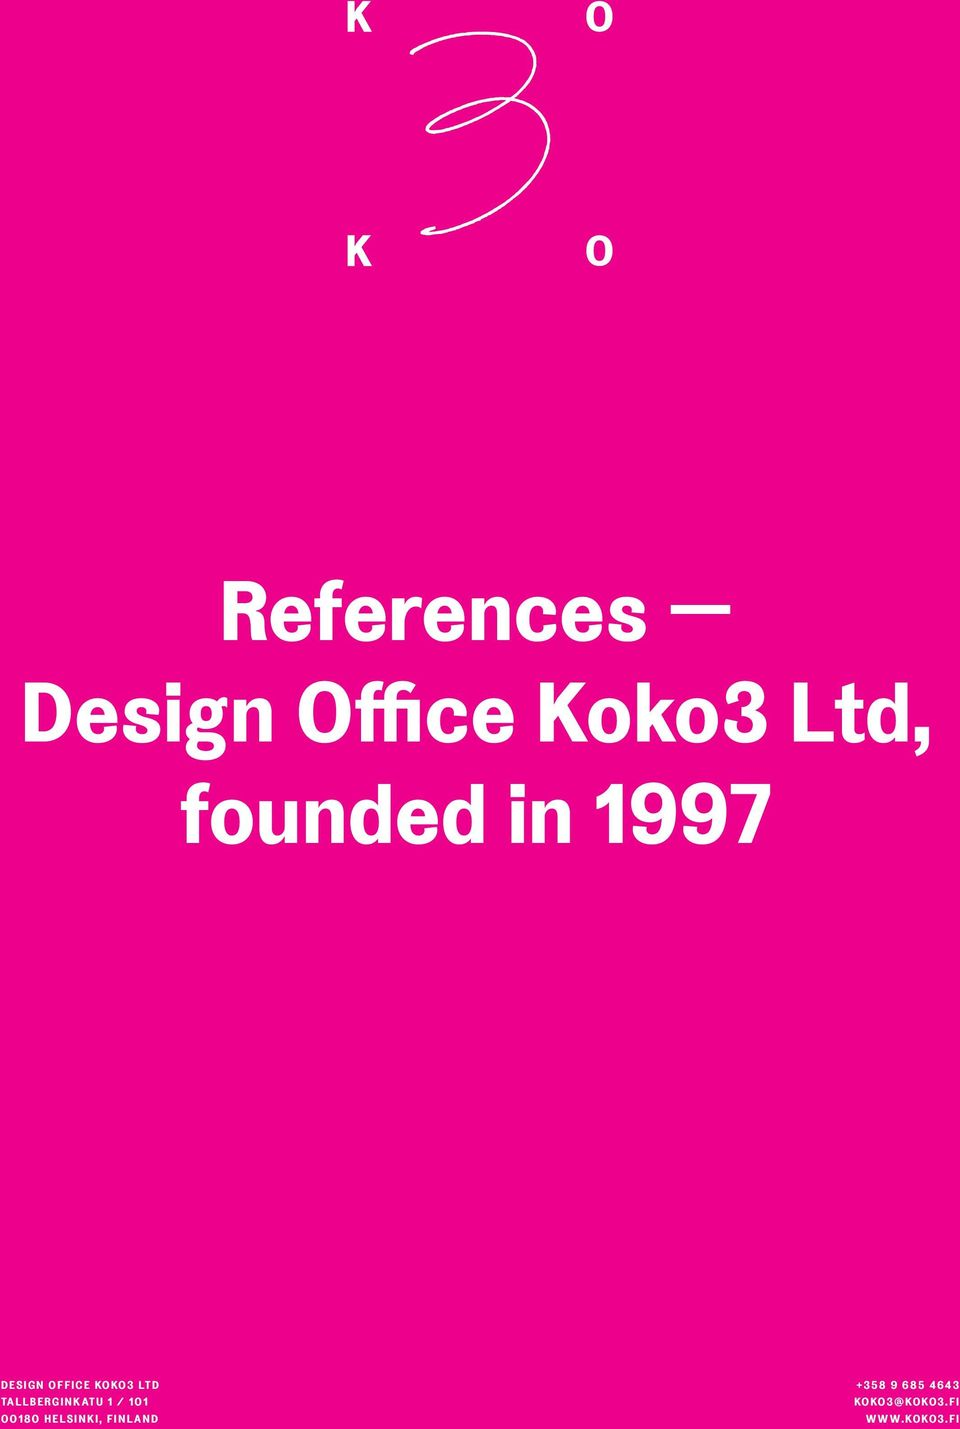 Office Koko3